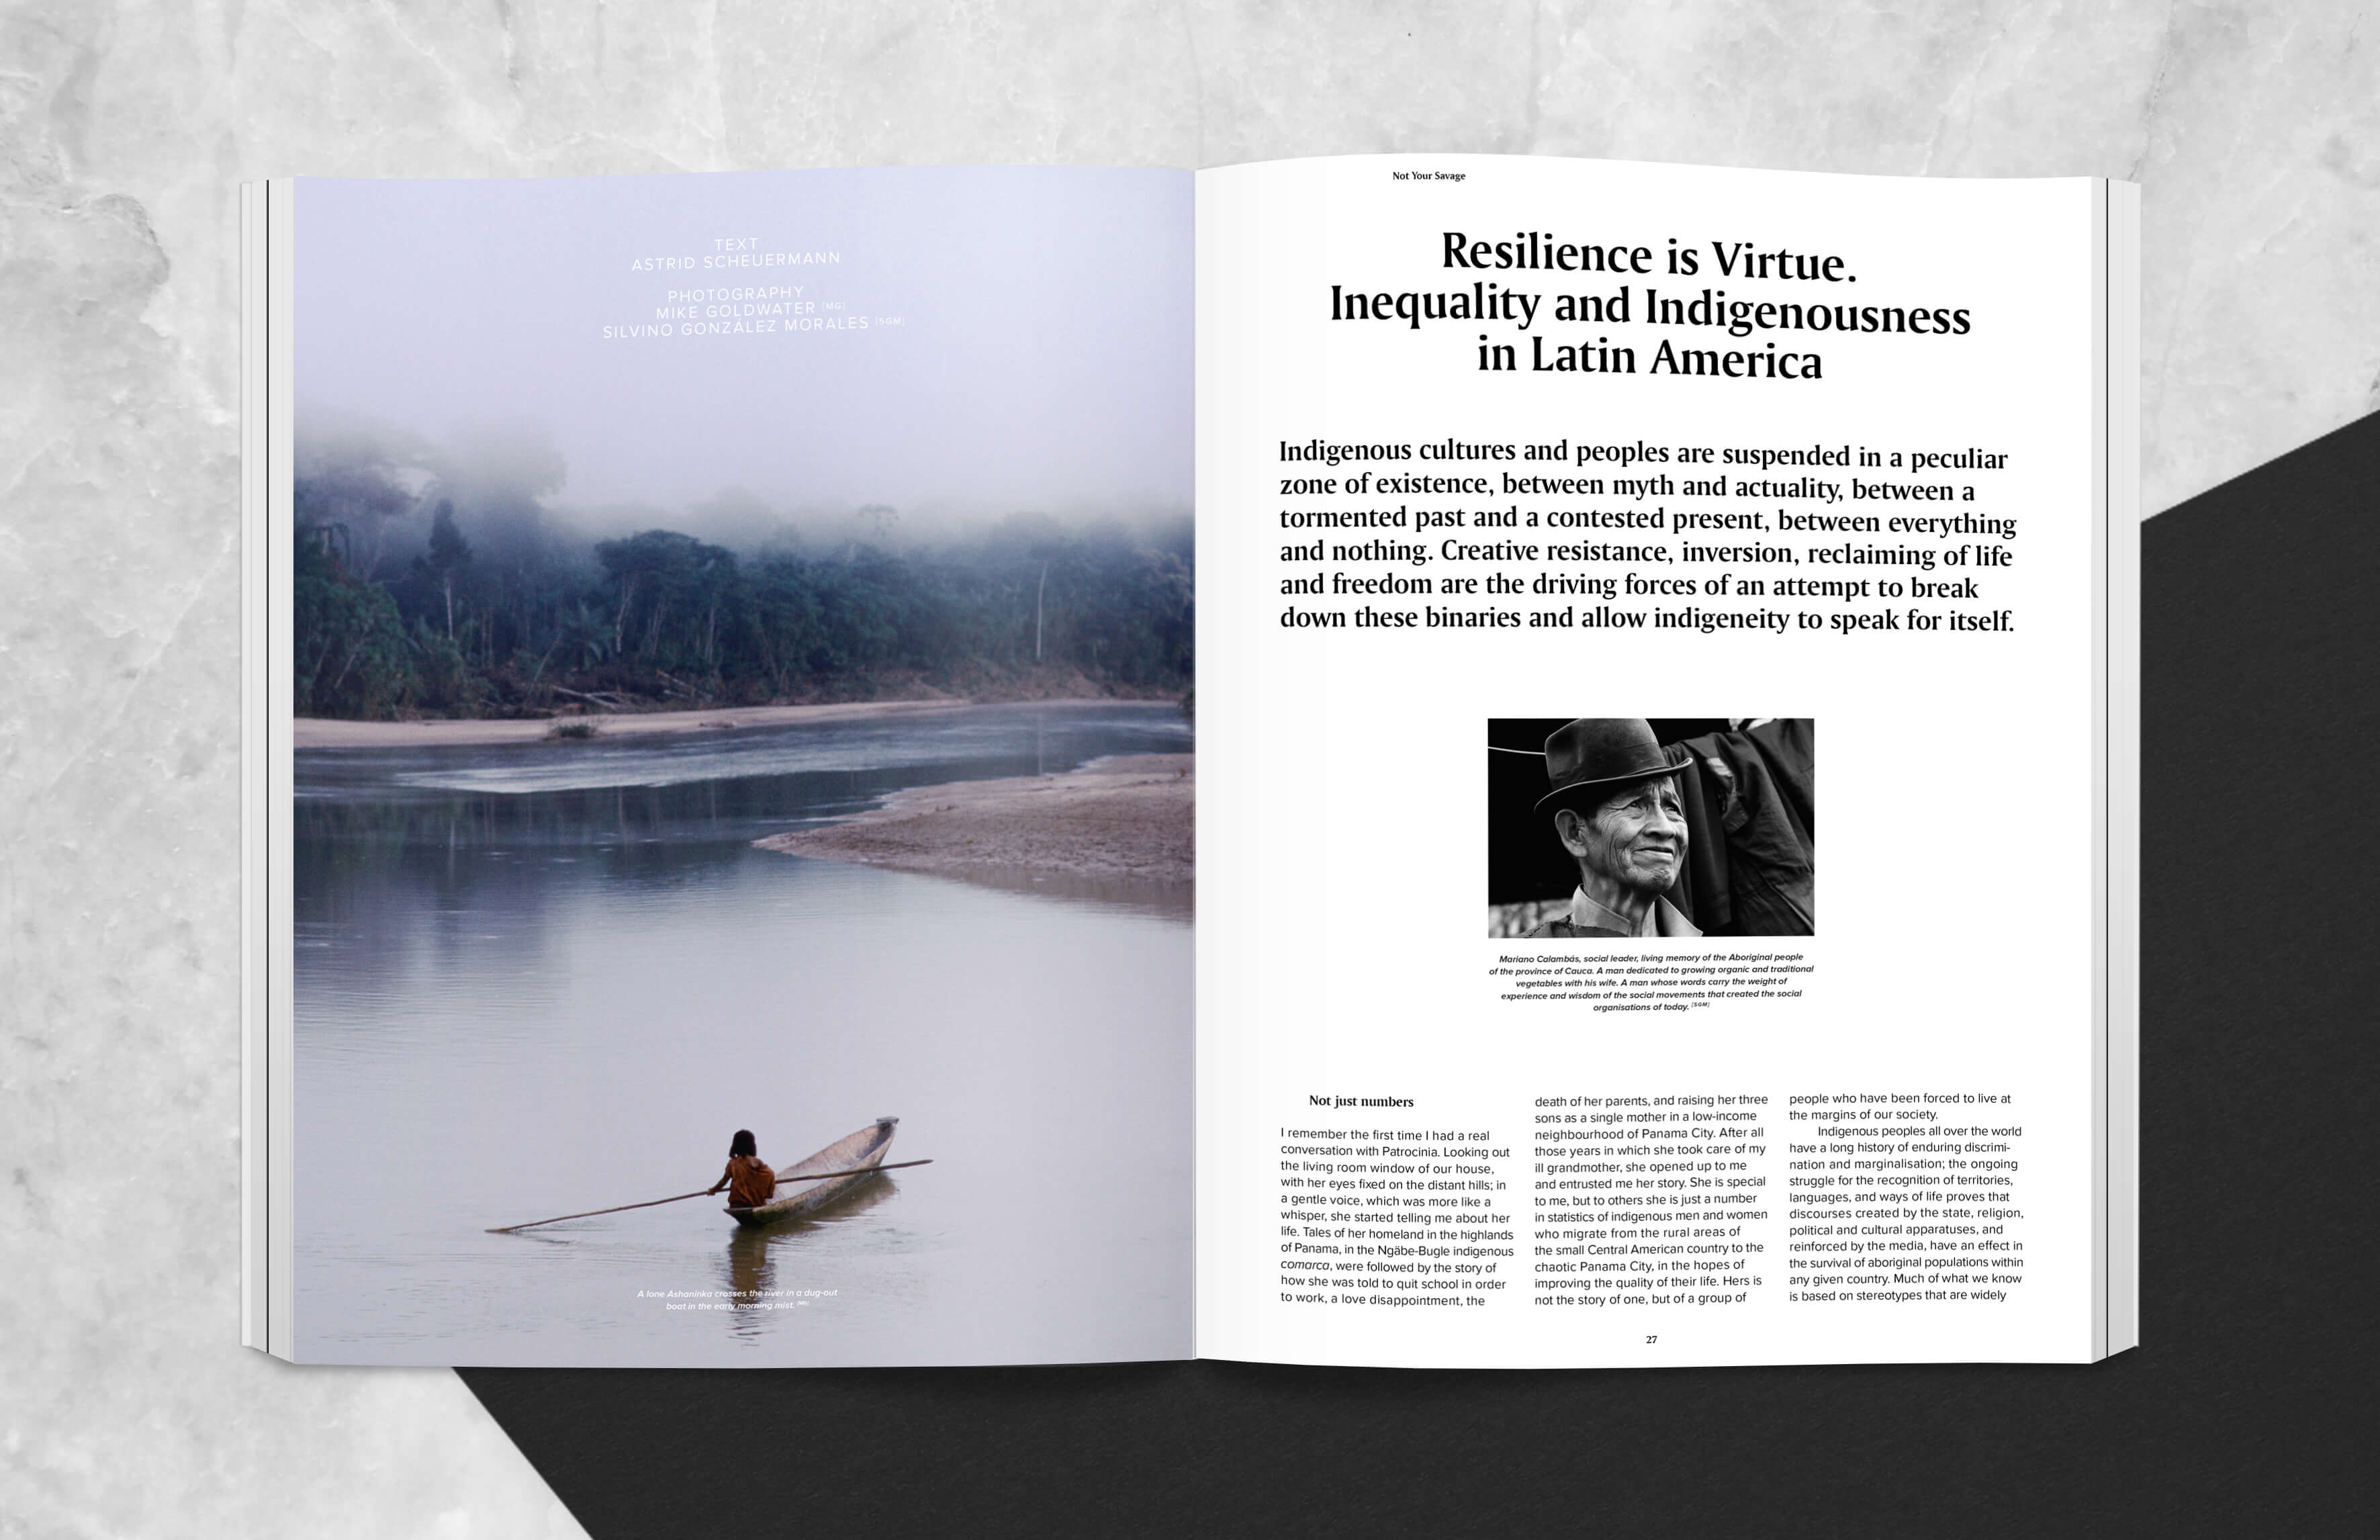 Magazine spread with article about inequality and indigenousness in Latin America, Ashaninka in boat and portrait